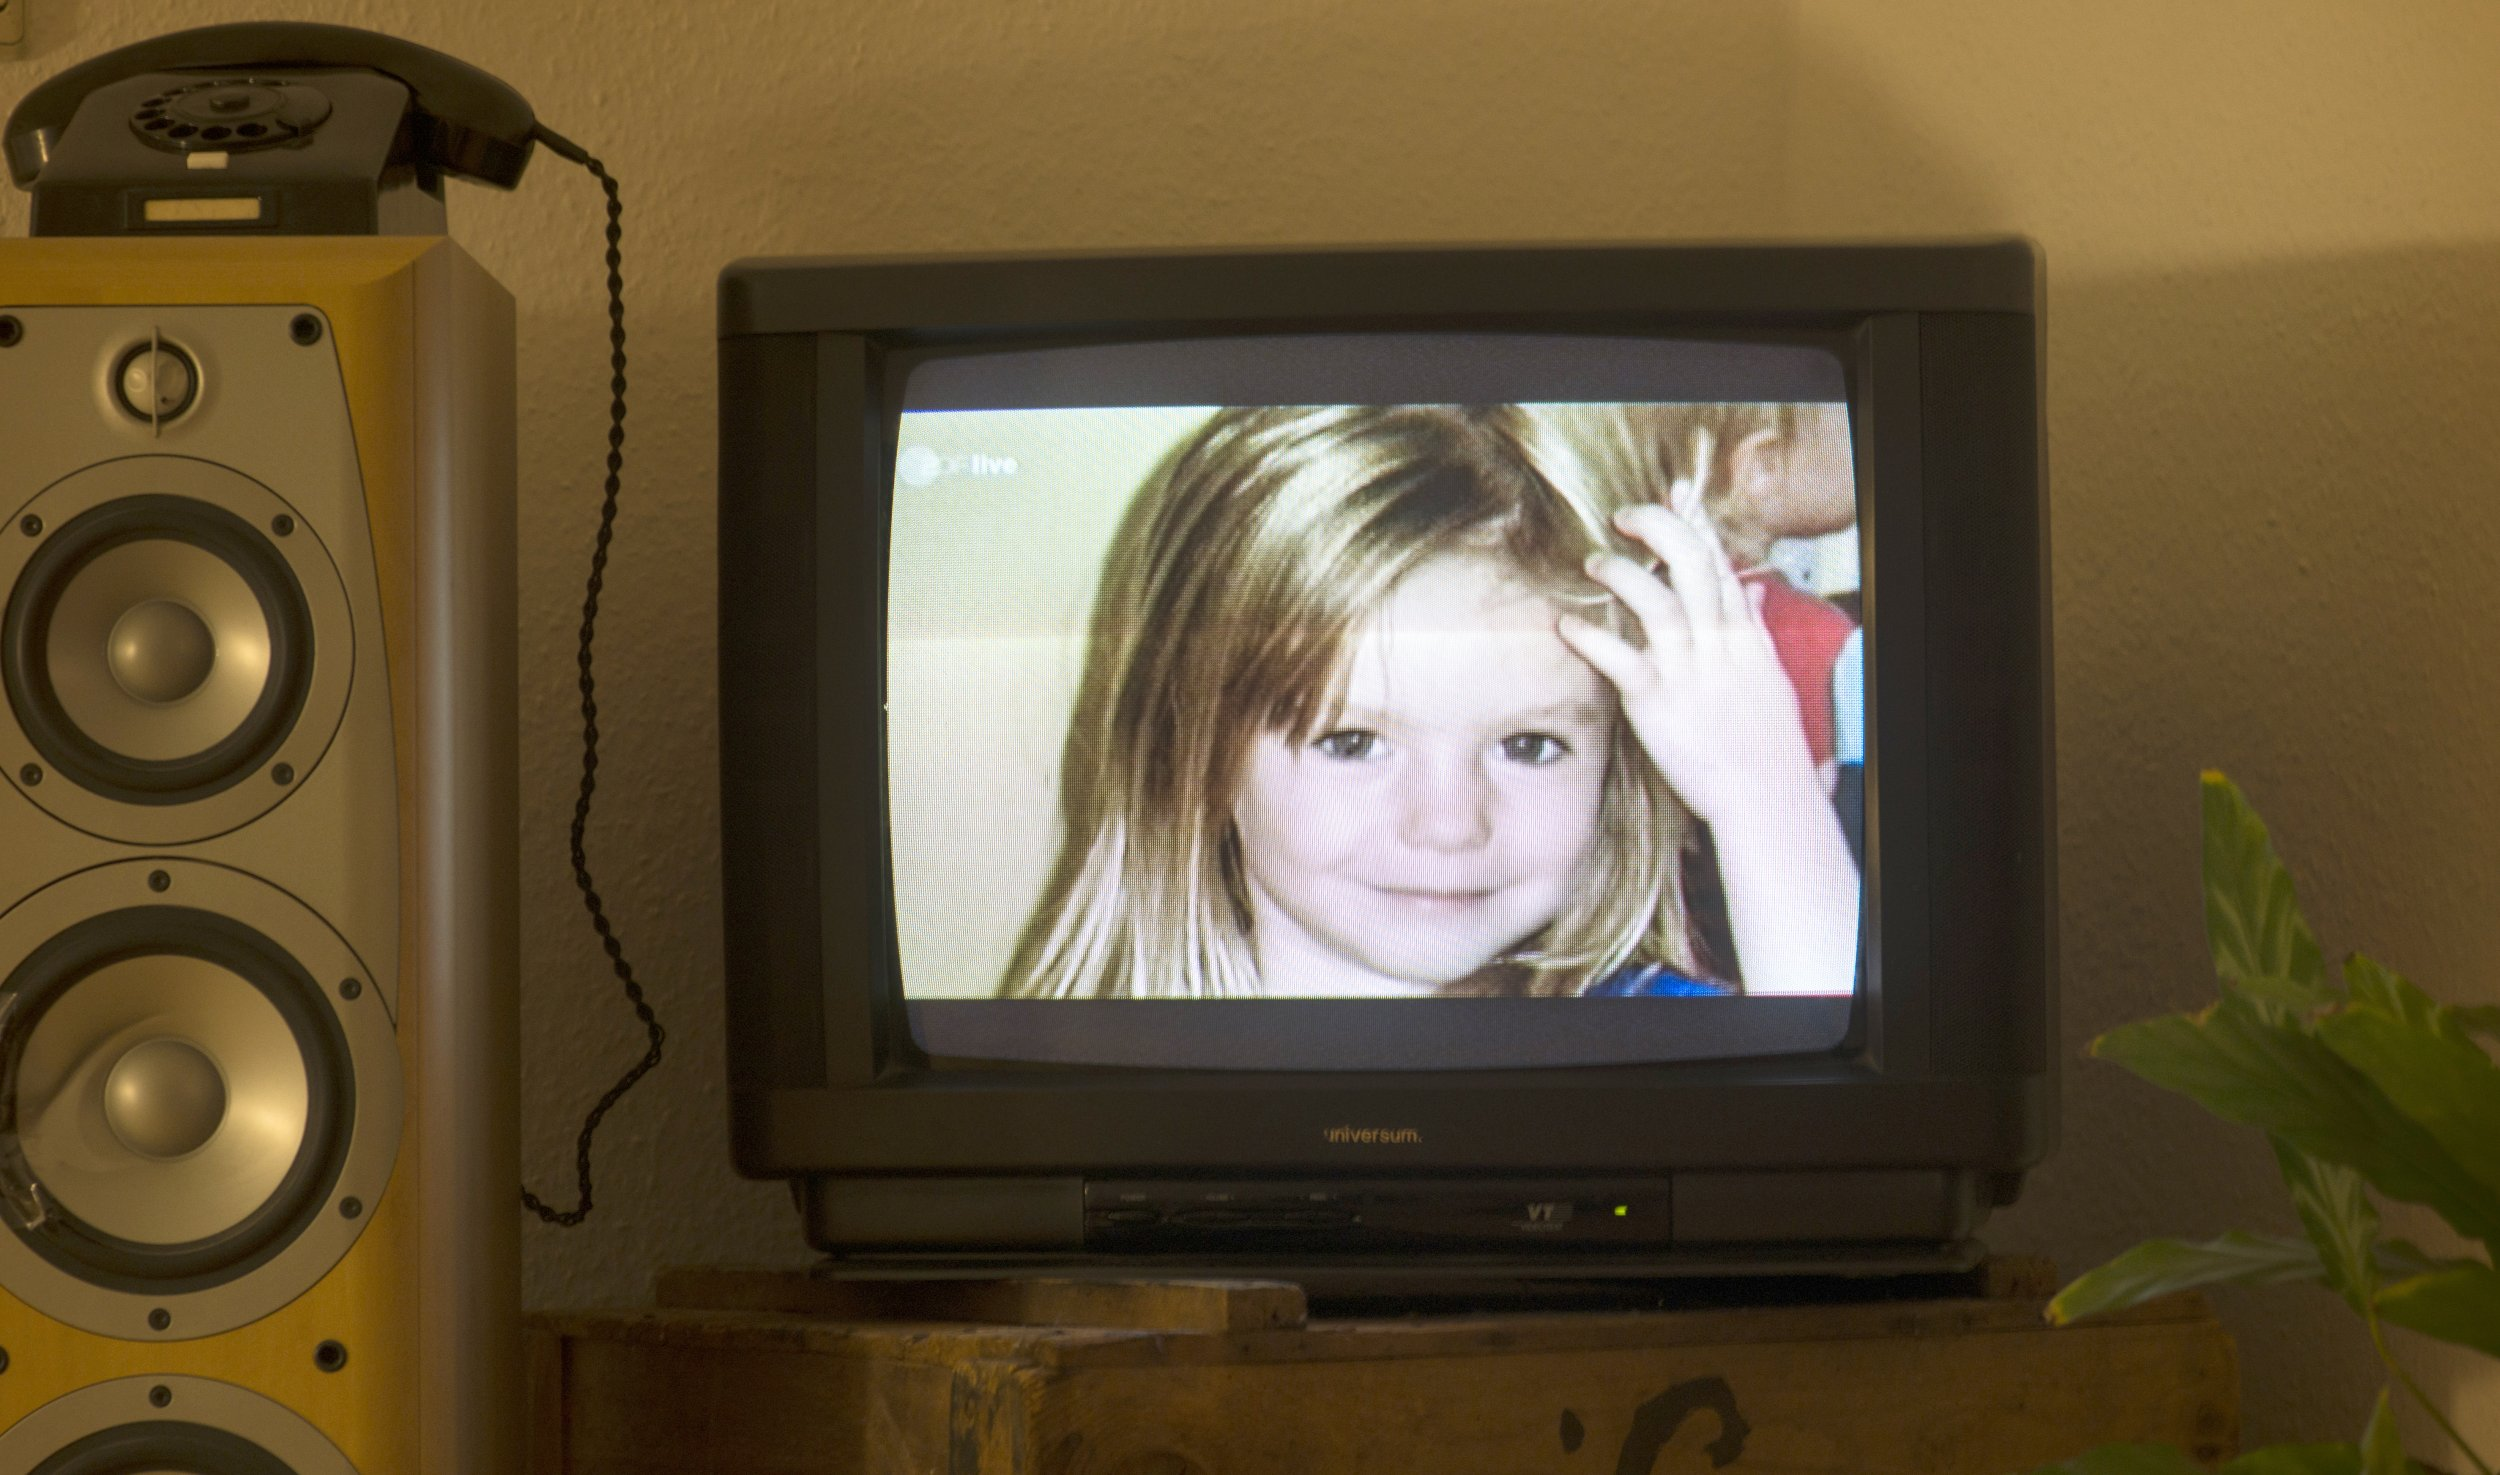 Netflix probes Madeleine McCann disappearance in new documentary - but parents Kate and Gerry want 'NOTHING to do' with controversial film - Page 13 Gettyimages-185029825